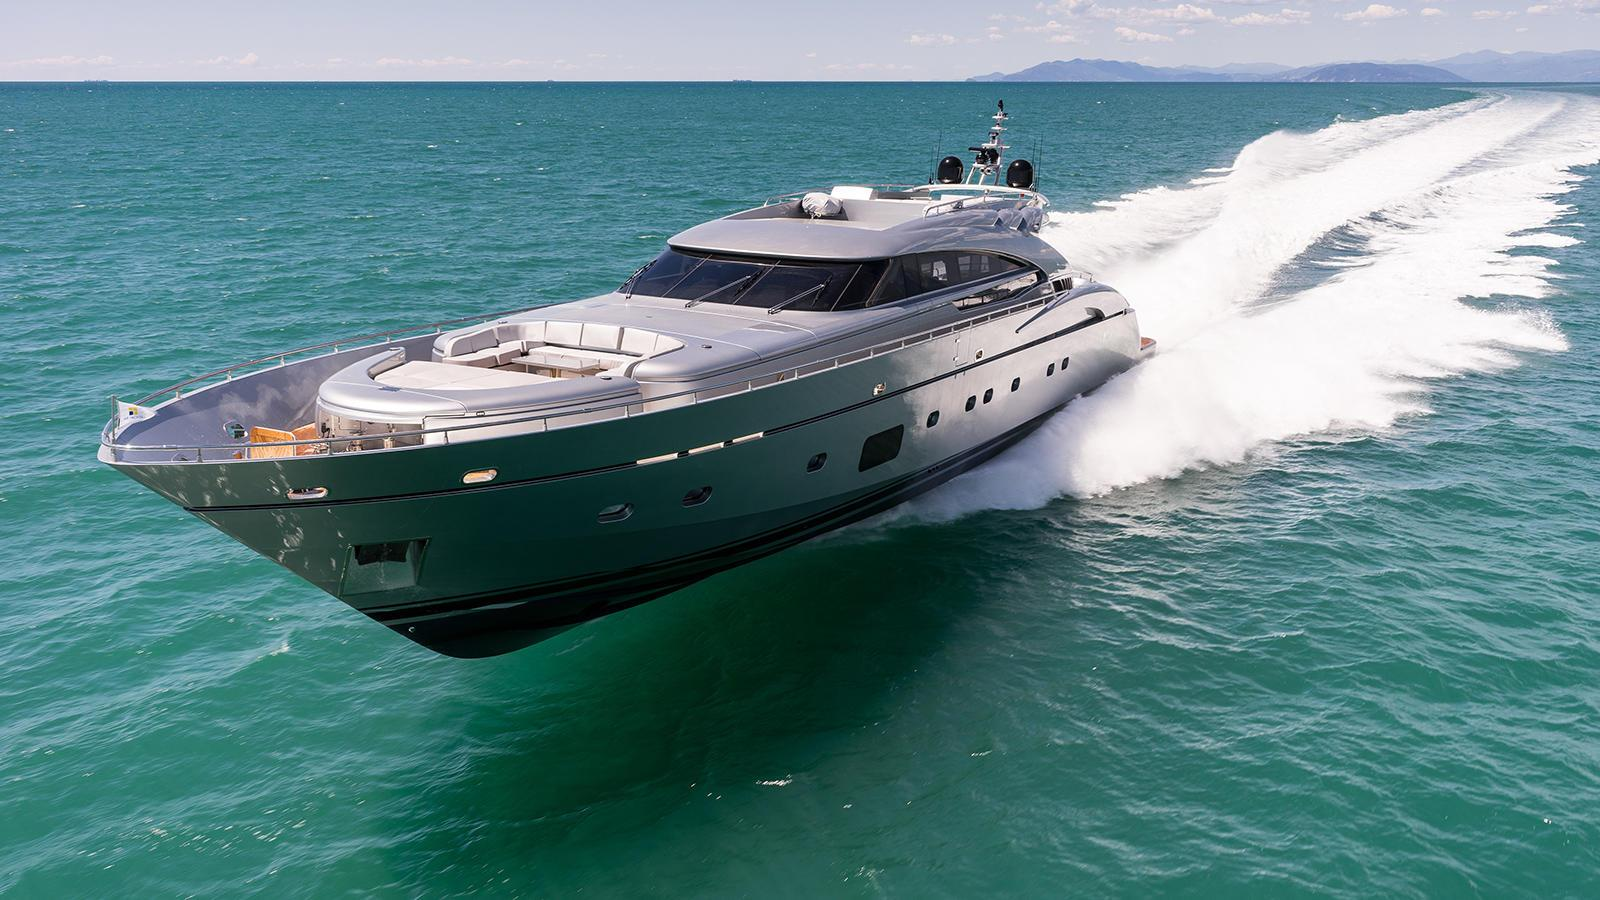 The yacht Swift built by AB Yachts